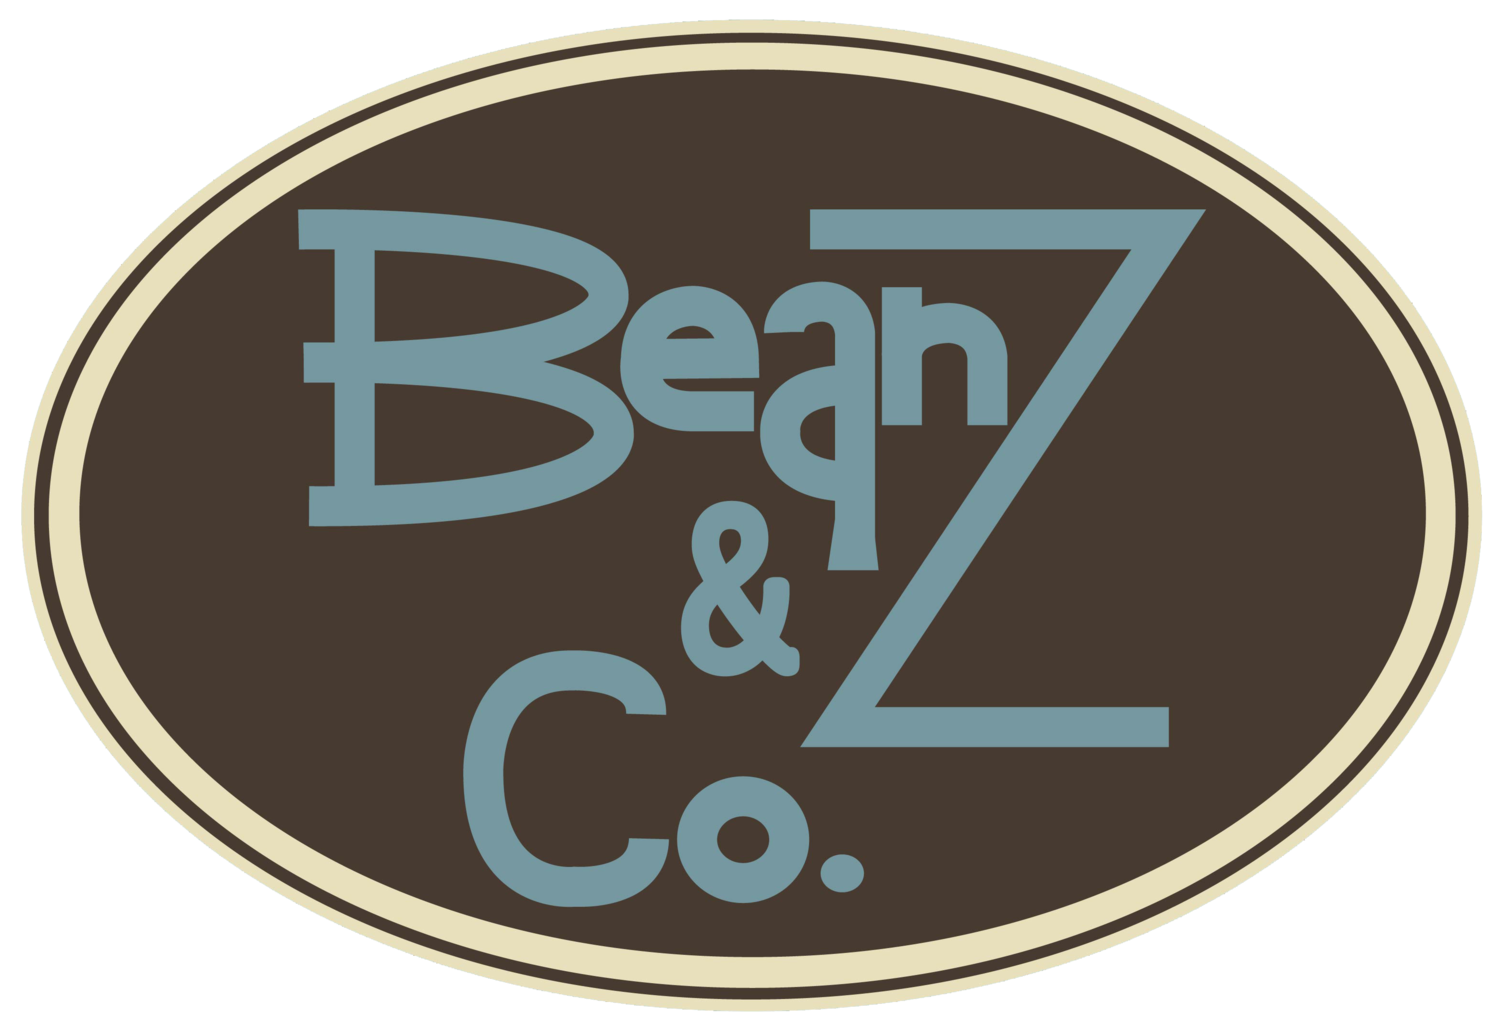 BeanZ and Co. - Where Everyone Belongs